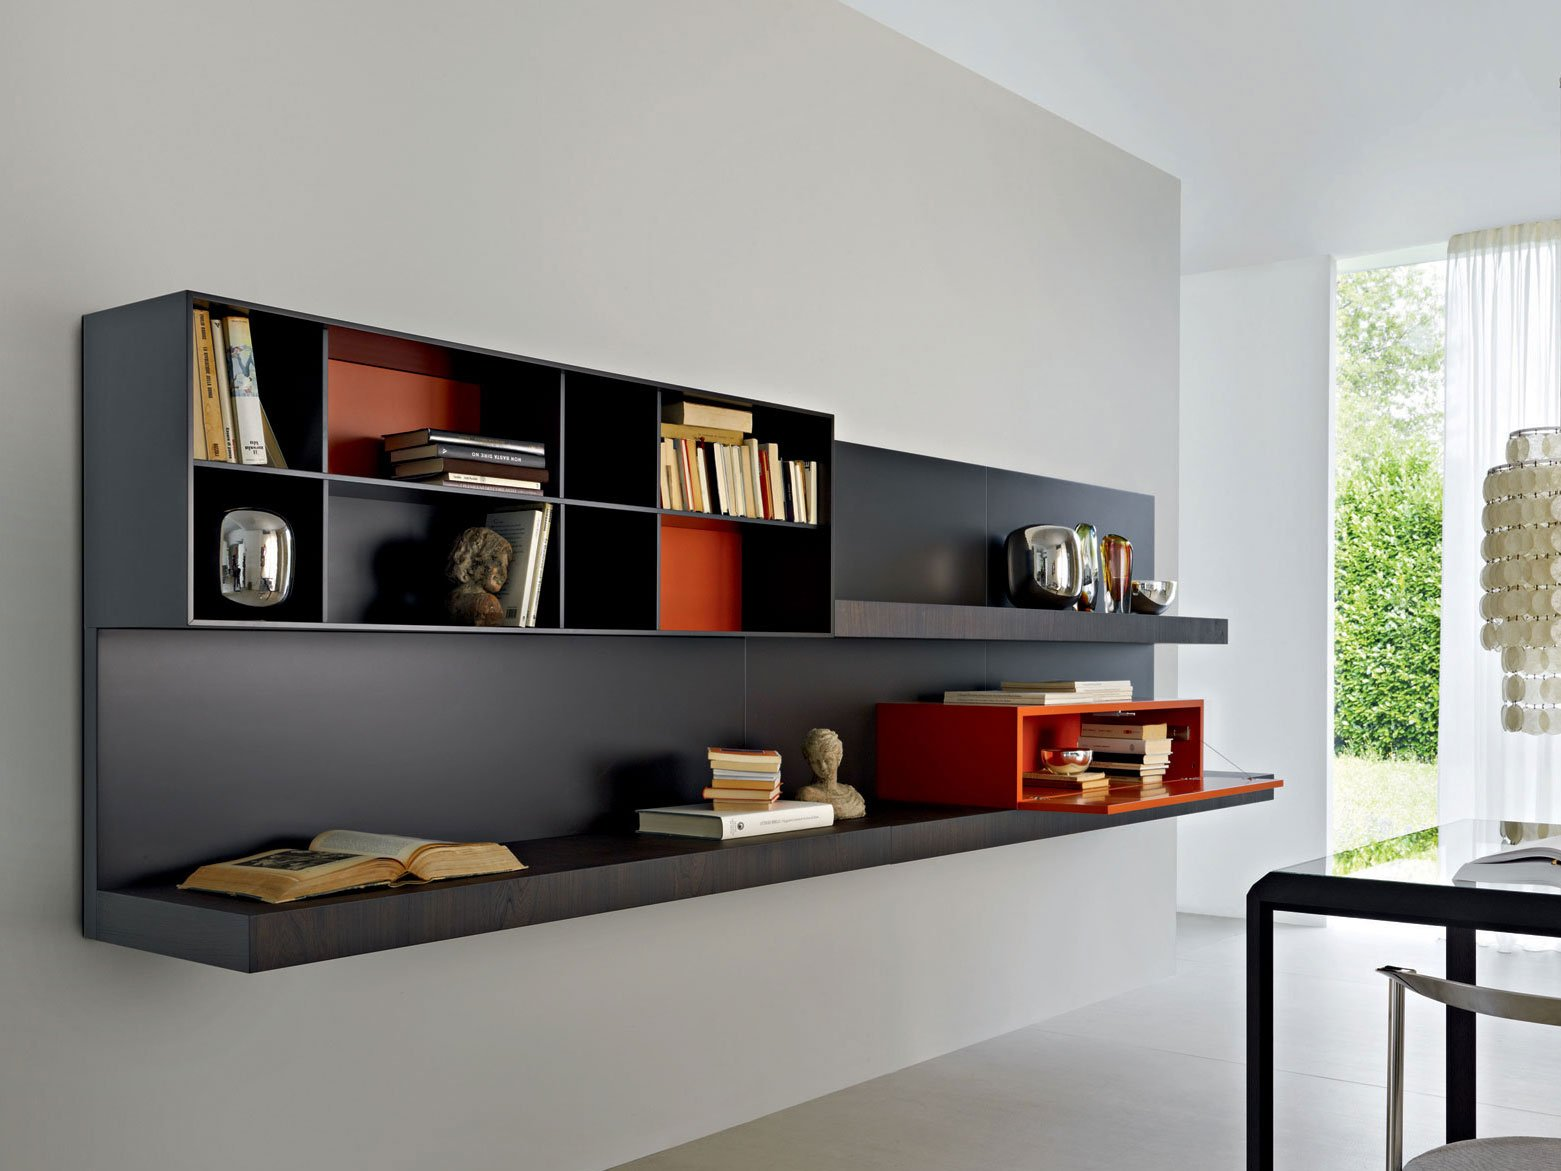 pass biblioth que suspendue by molteni c design nicola. Black Bedroom Furniture Sets. Home Design Ideas